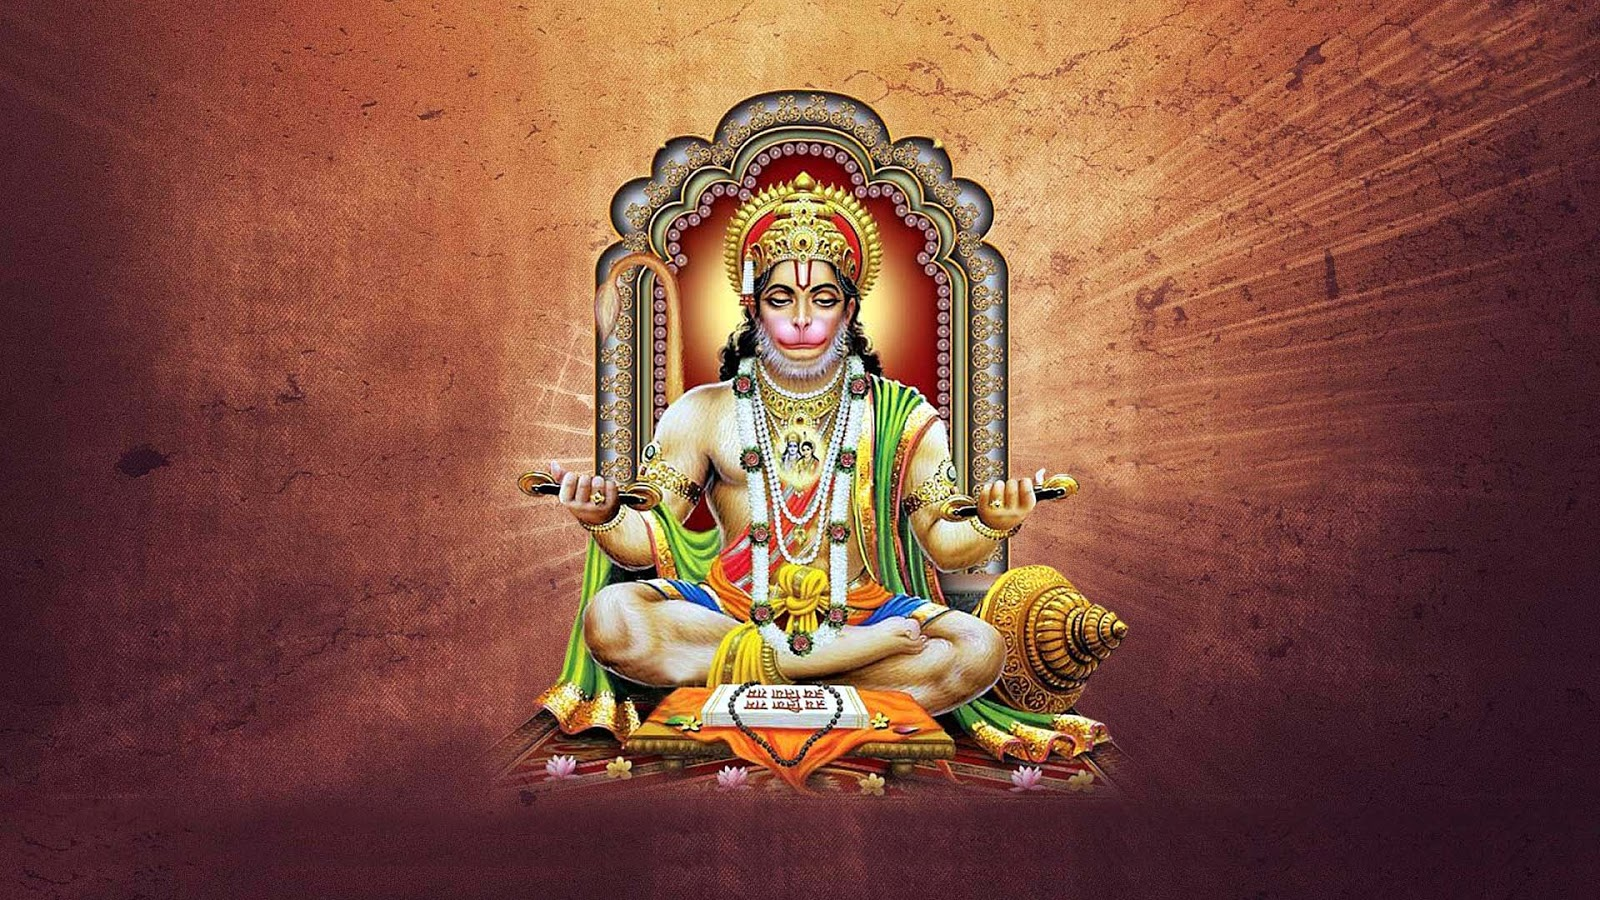 New HD images of Hanumanji Free Download ~ Allfreshwallpaper